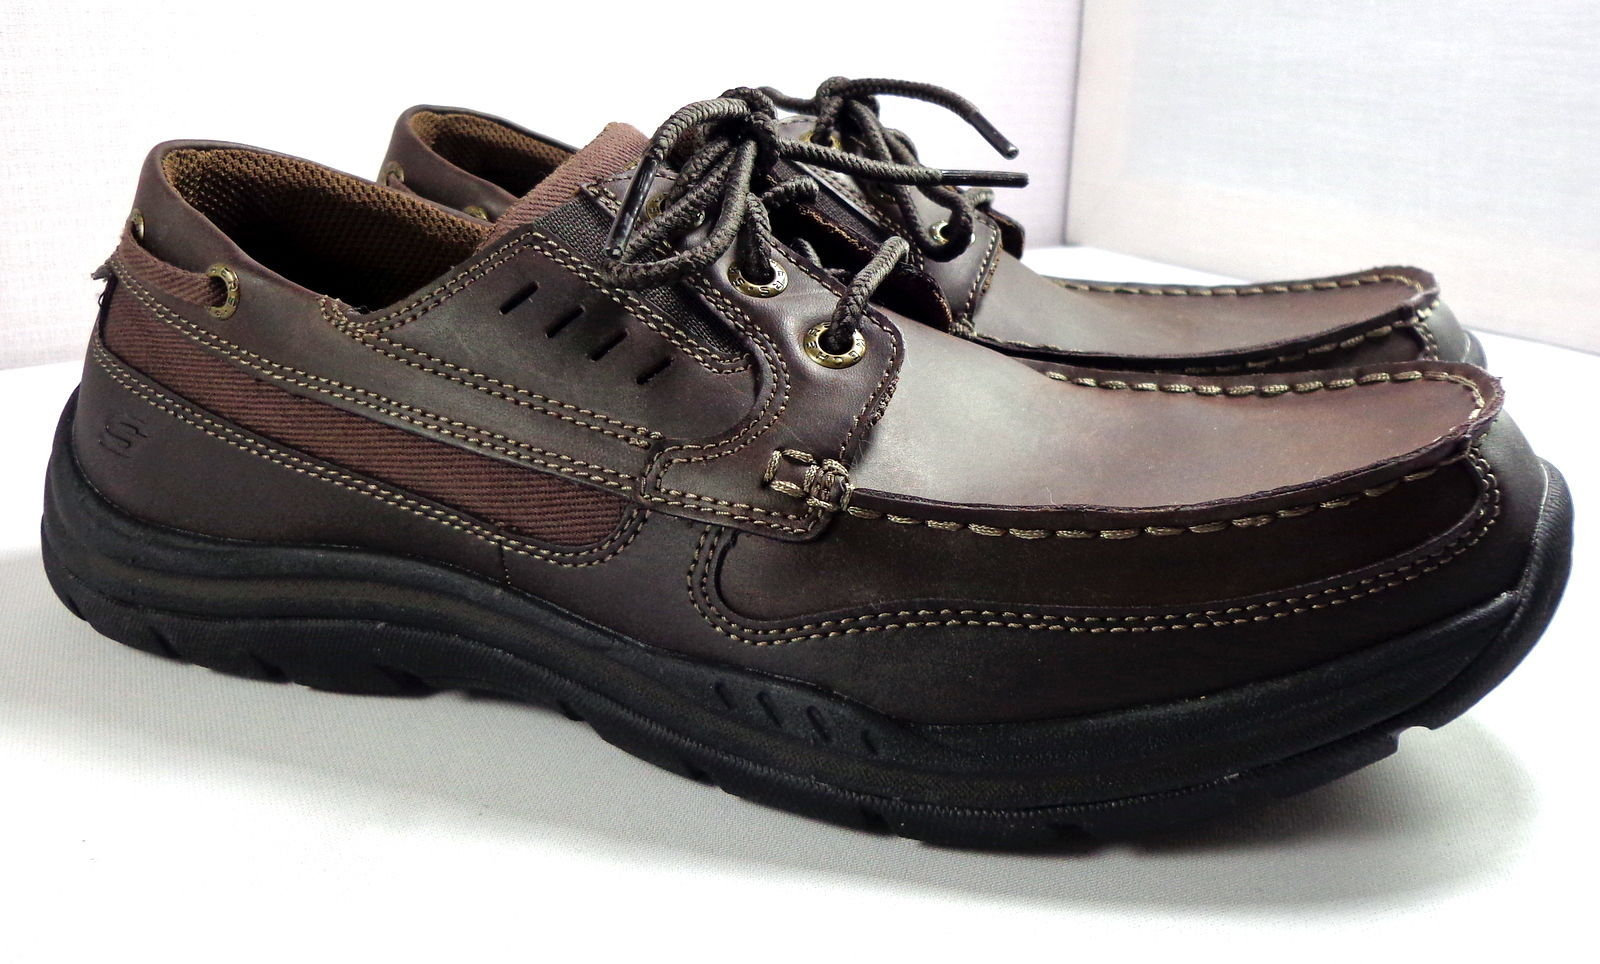 Details about SKECHERS MEN'S SHOES BROWN LEATHER RELAXED FIT MEMORY FOAM OXFORDS LACE UP